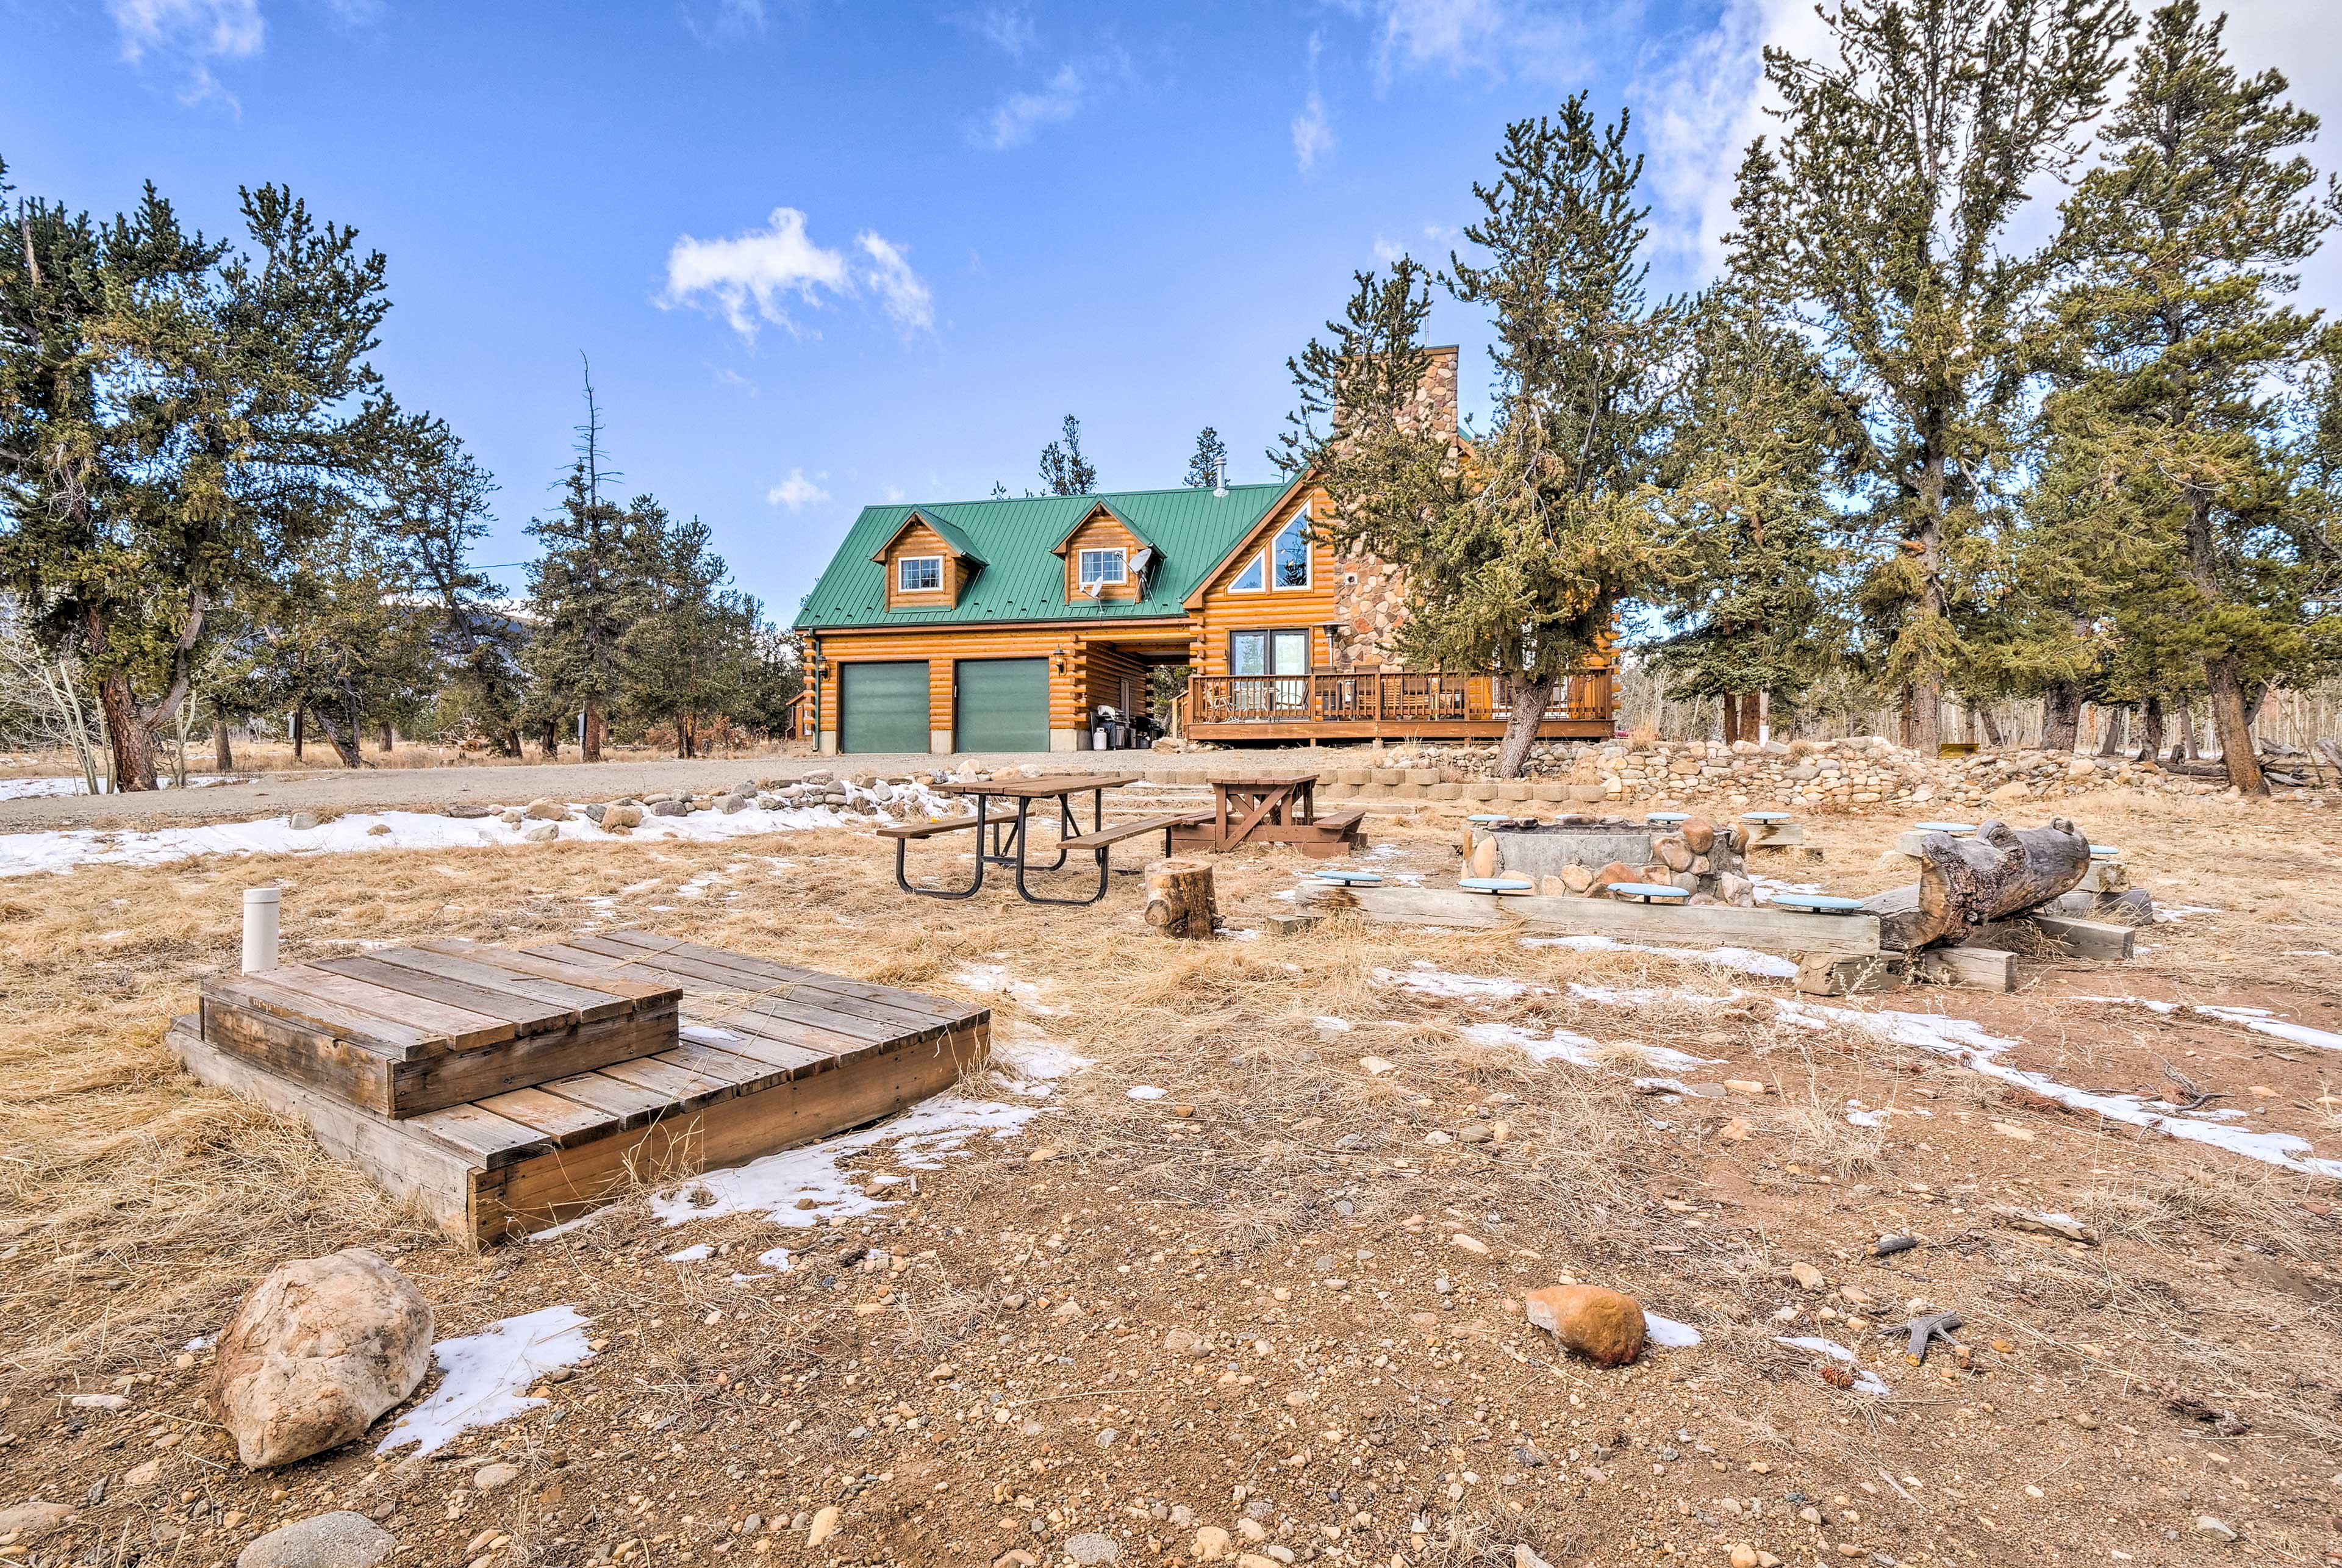 Explore South Central Colorado from this noteworthy cabin in Fairplay!